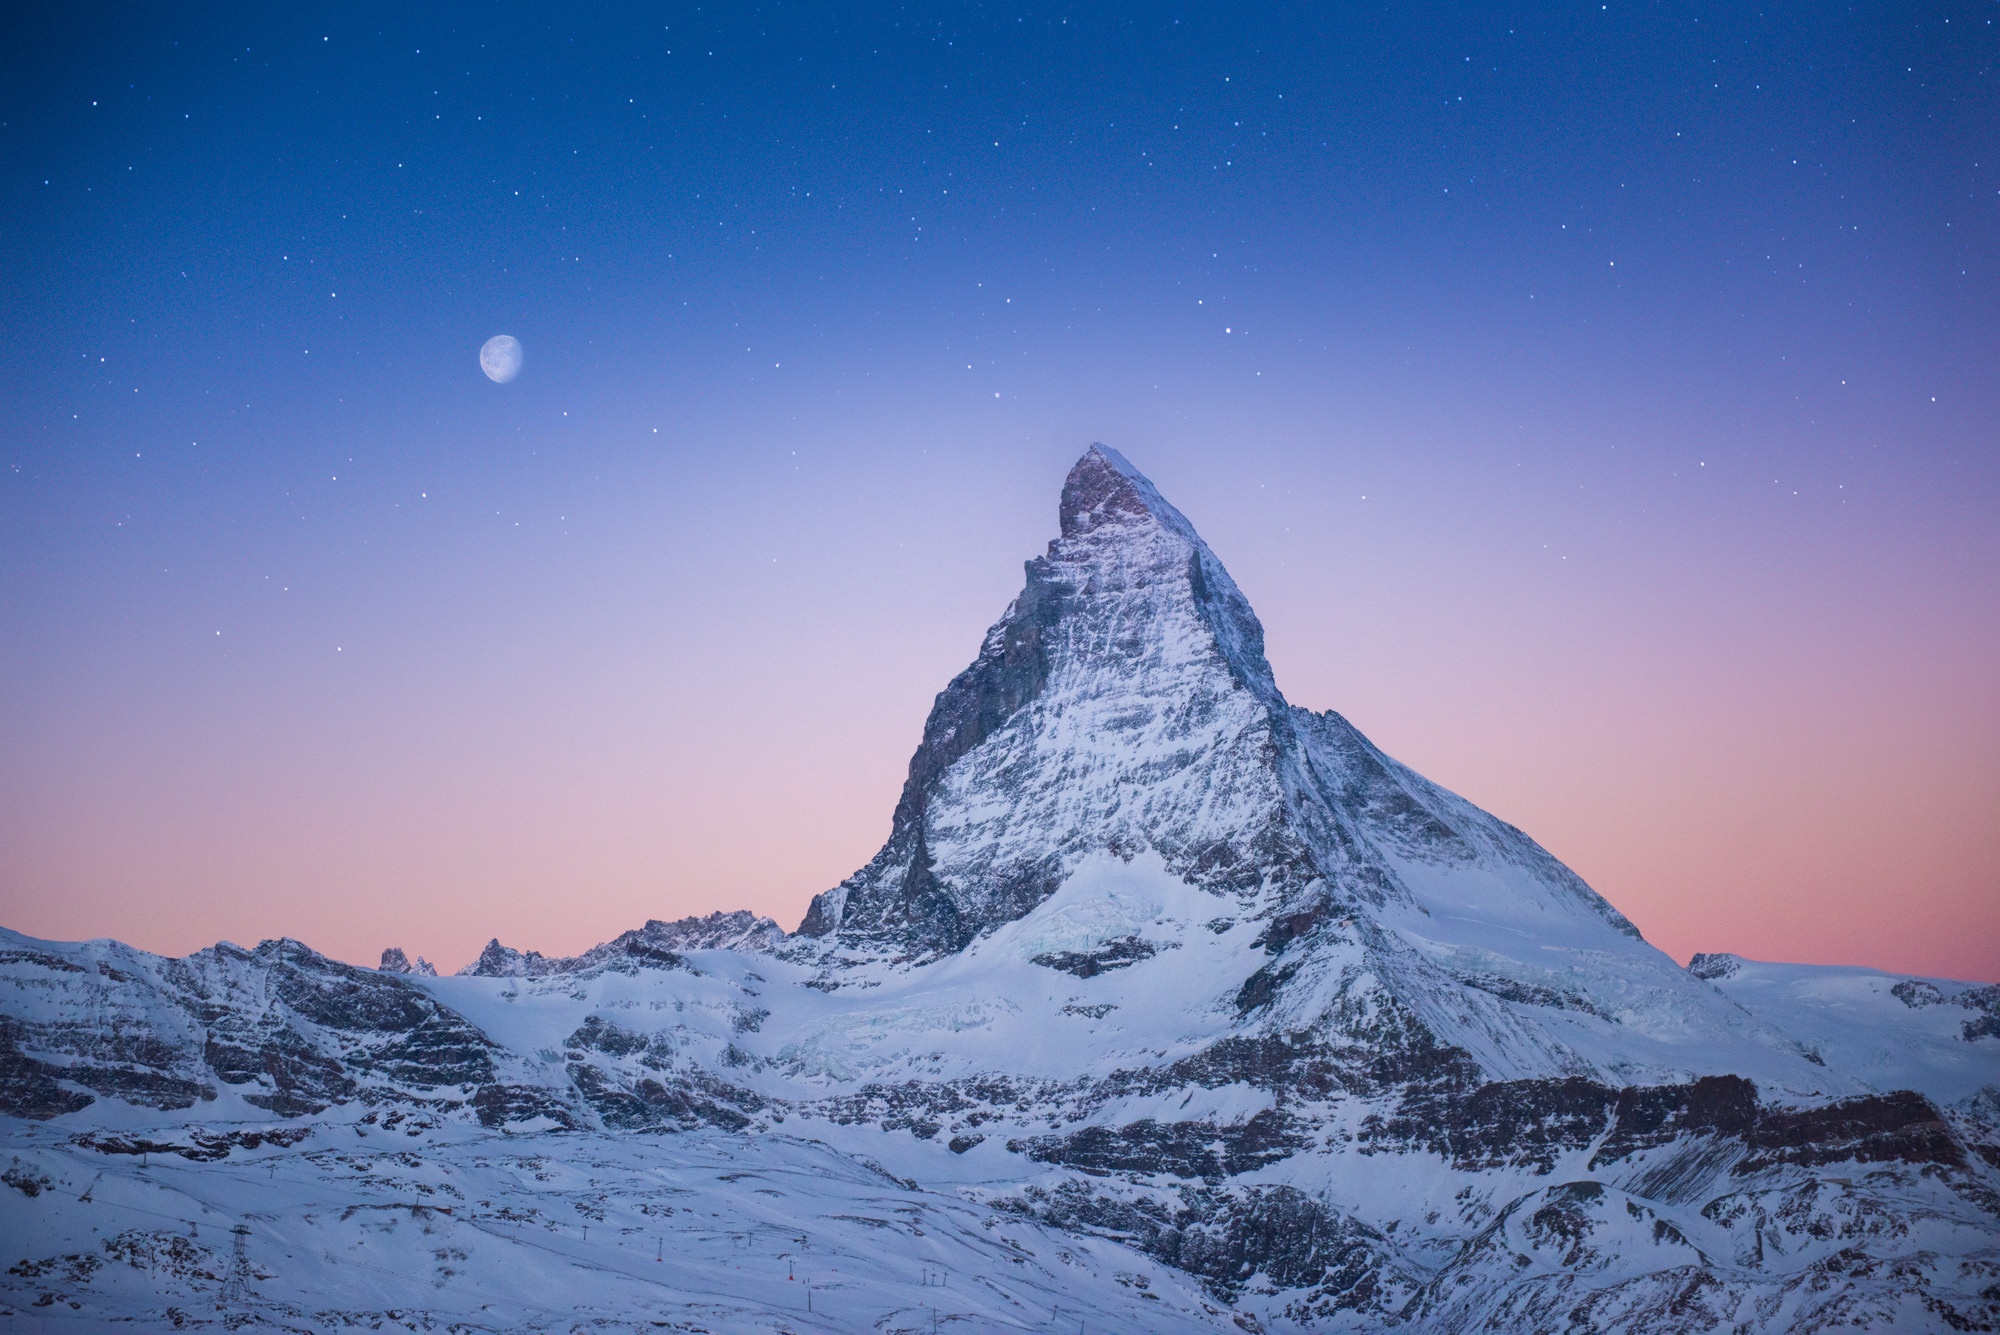 A triangular shaped mountain next to the moon at dusk